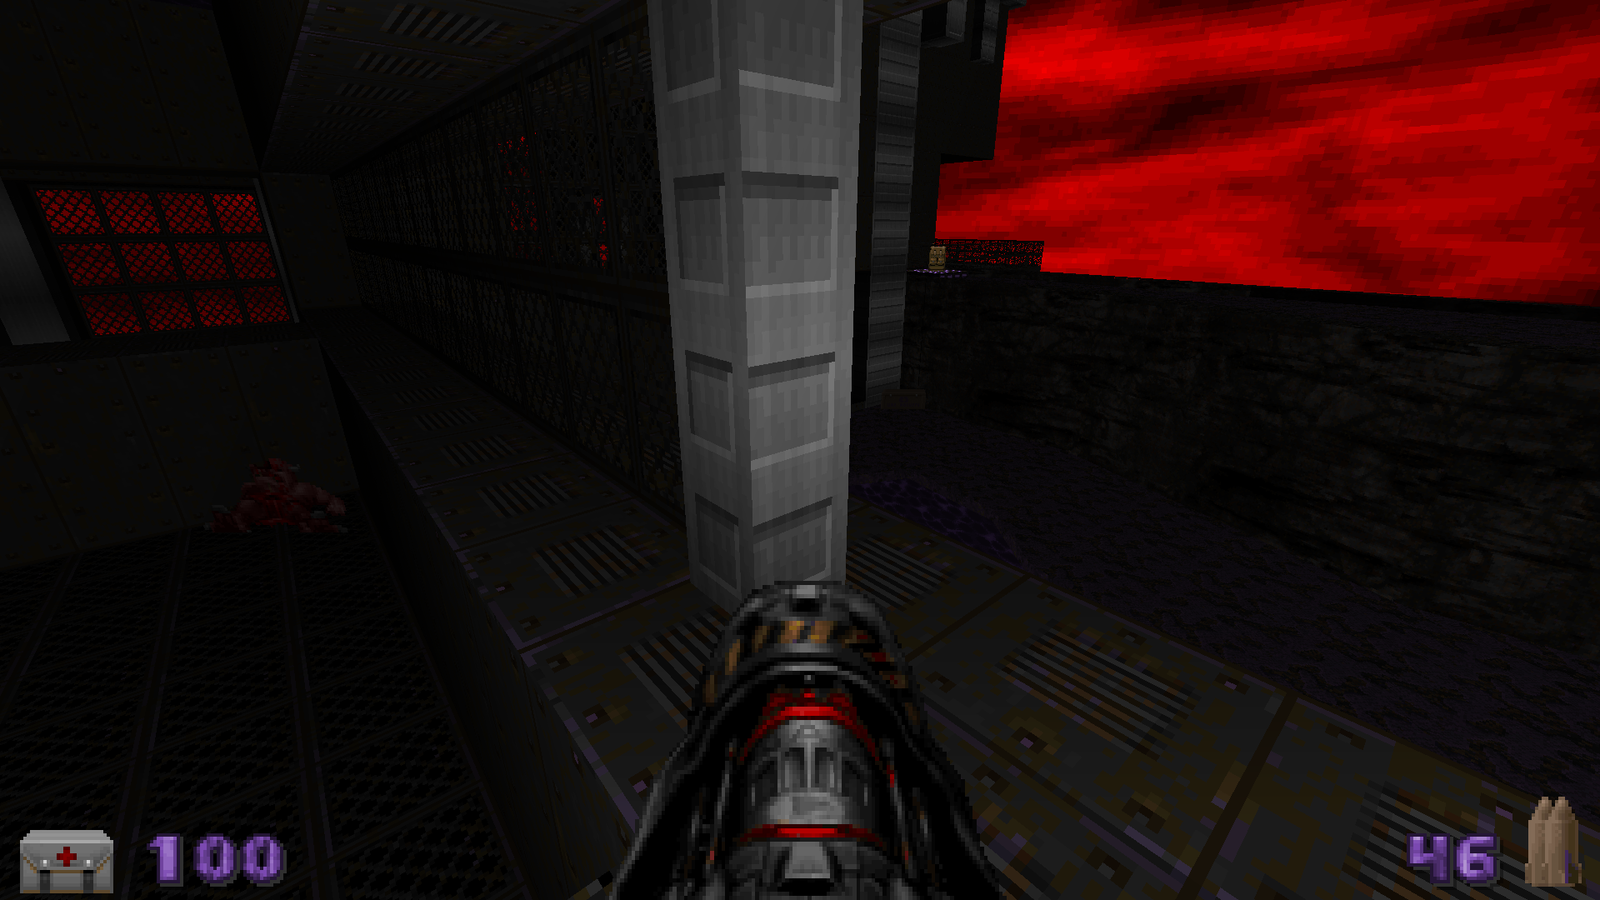 Screenshot_Doom_20180623_201434.png.539af41984a9c83771005188d6a6d0f1.png